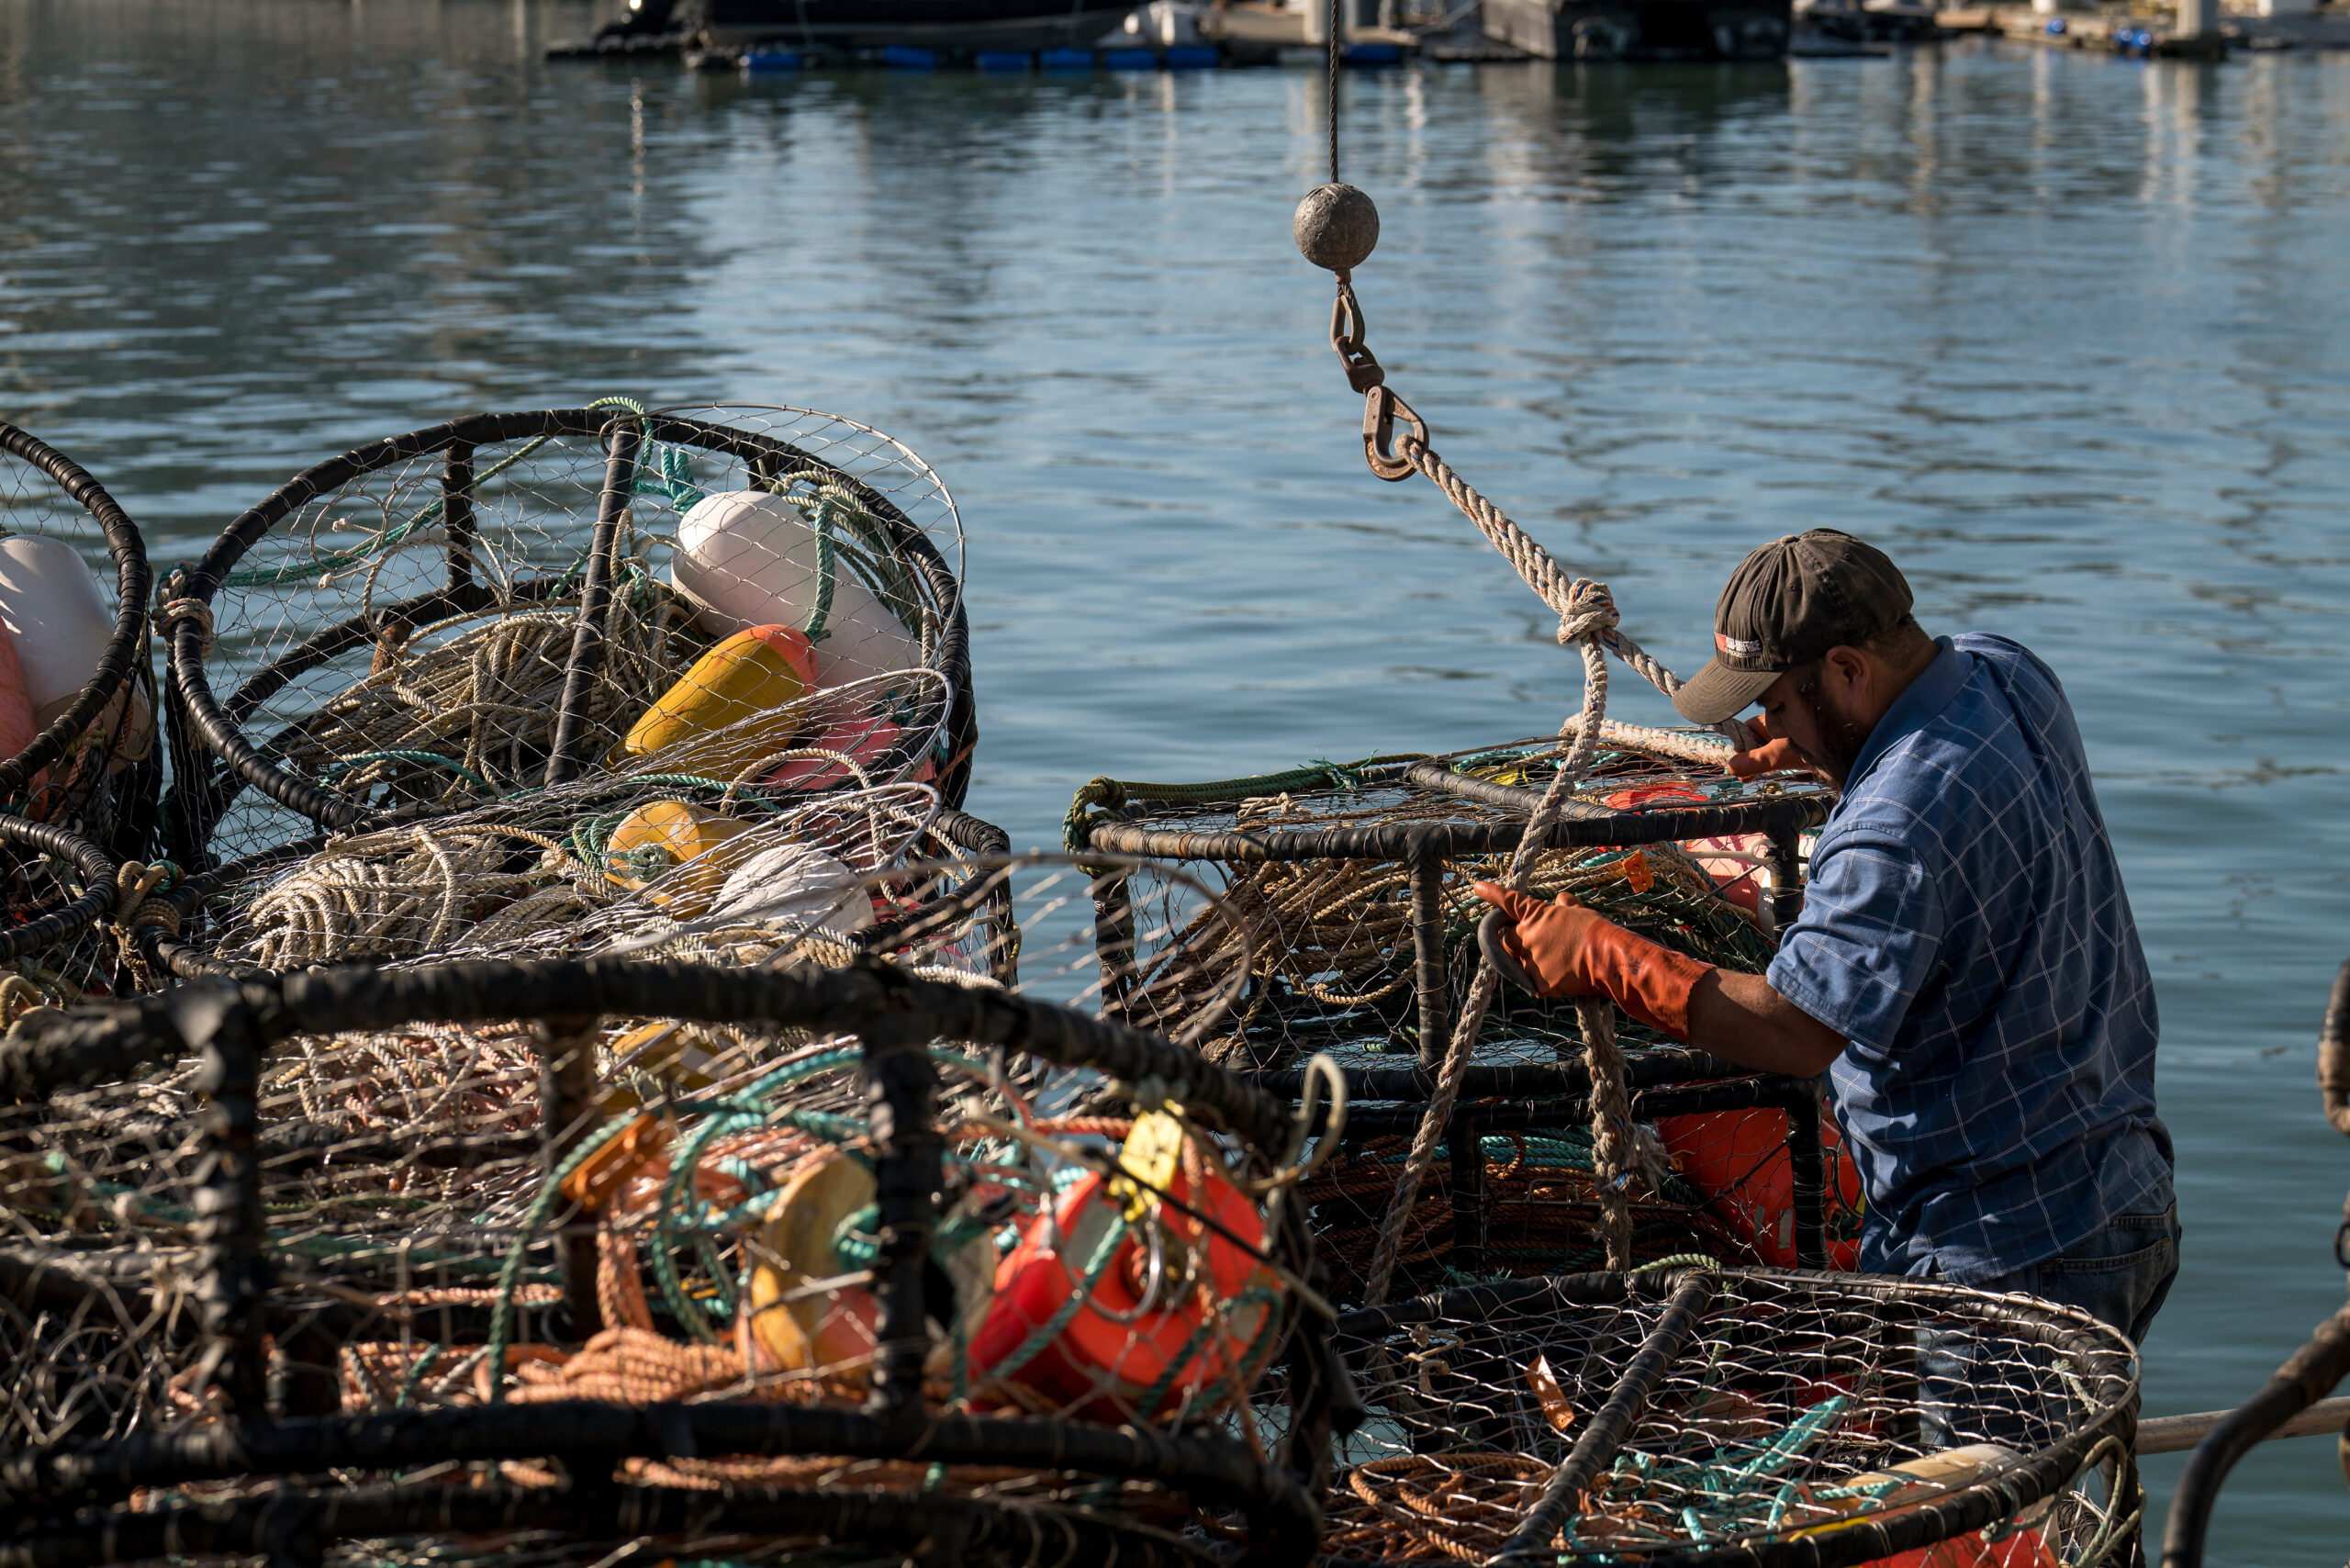 A fisherman hooks up crab pots to be taken off a boat at Pier 45 in San Francisco, California, on Monday, Dec. 23, 2019. Credit: David Paul Morris/Bloomberg via Getty Images